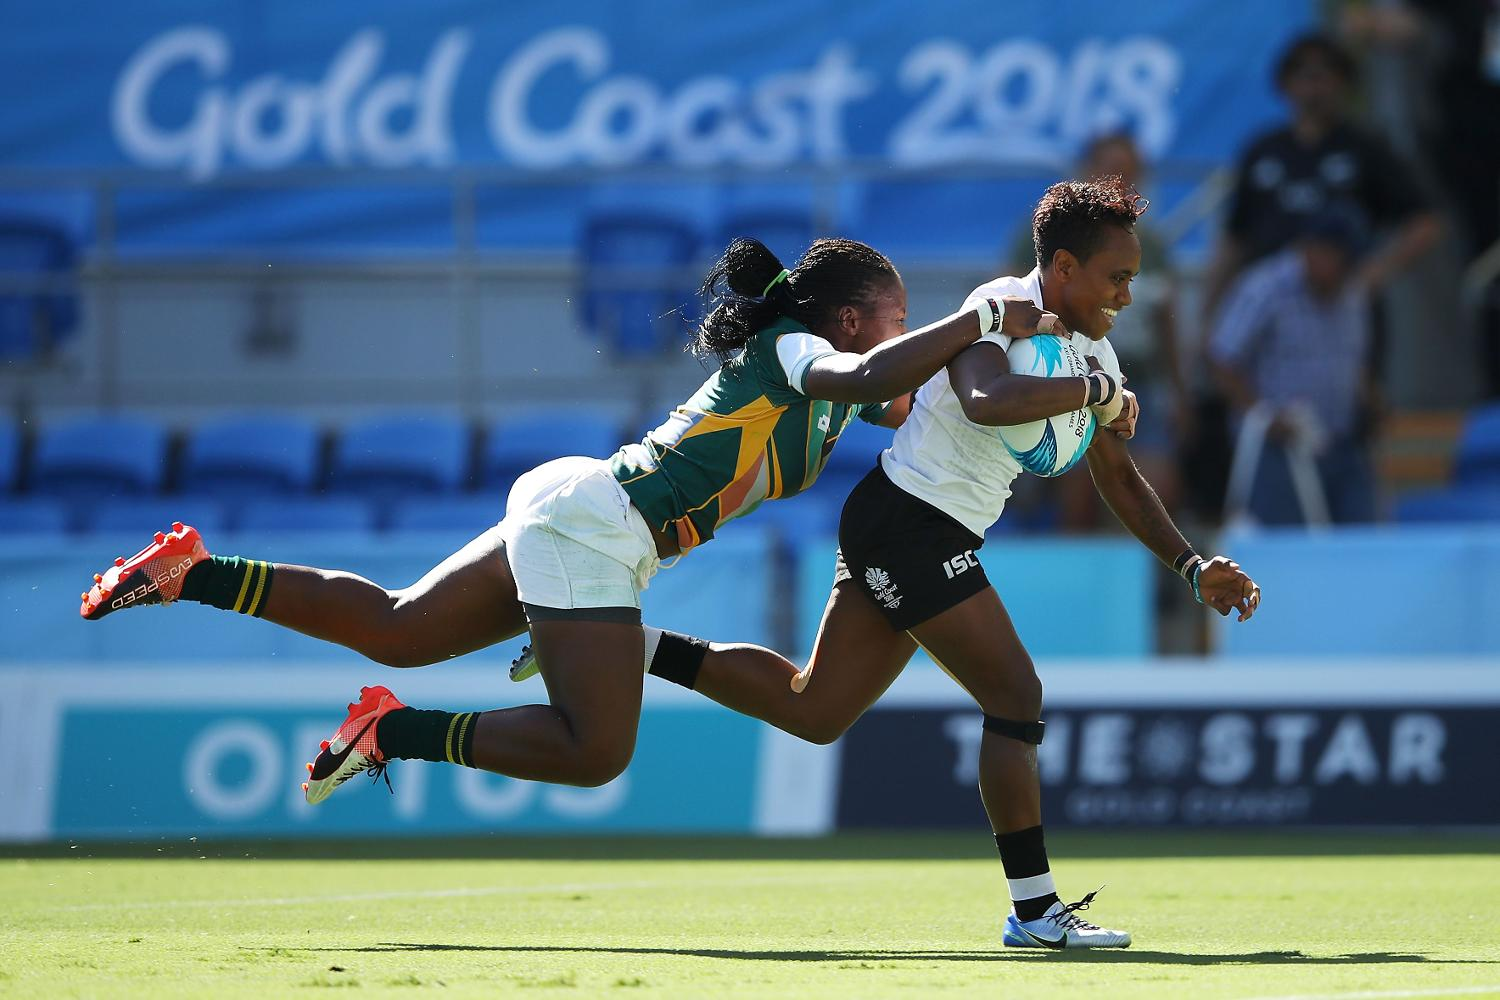 Gold Coast 2018 Commonwealth Games - Women's Sevens